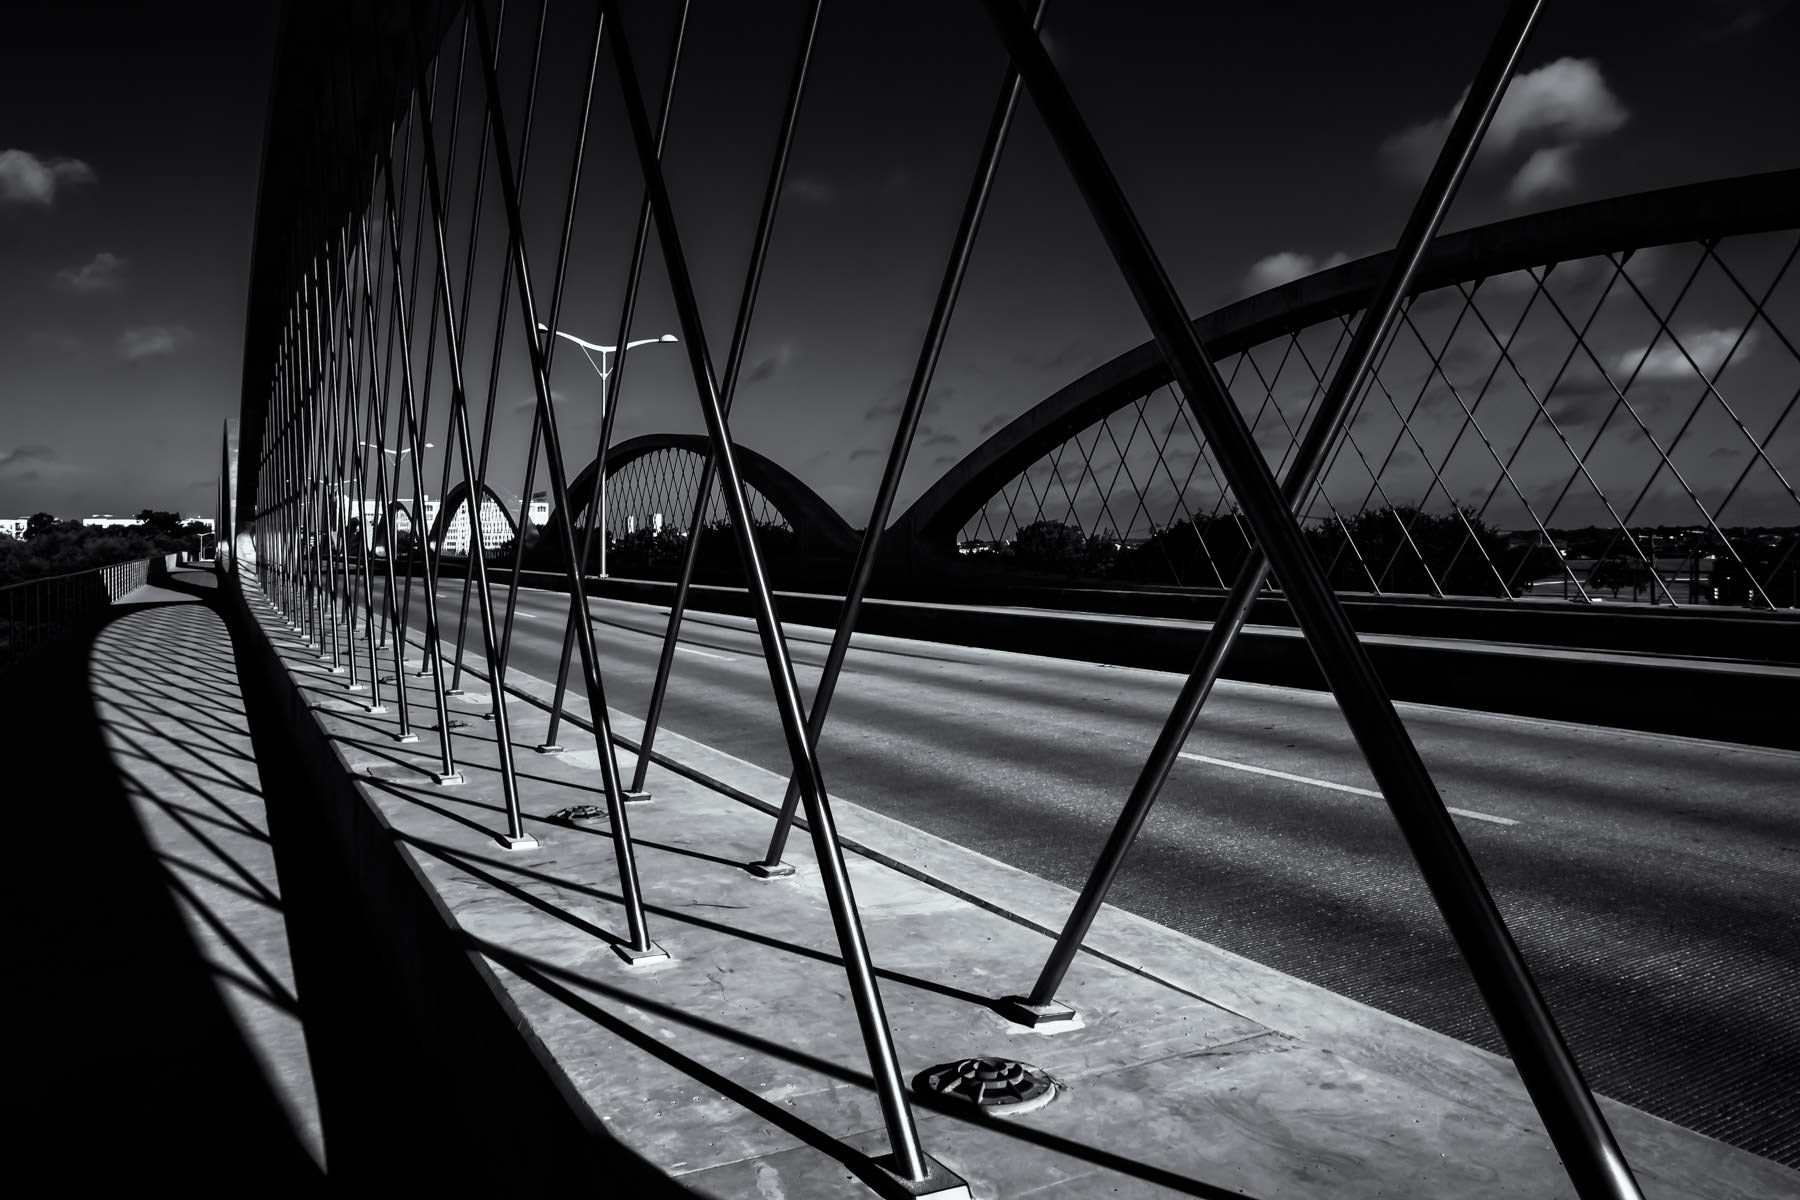 The arches of Fort Worth, Texas' iconic West Seventh Street Bridge undulate into the distance.